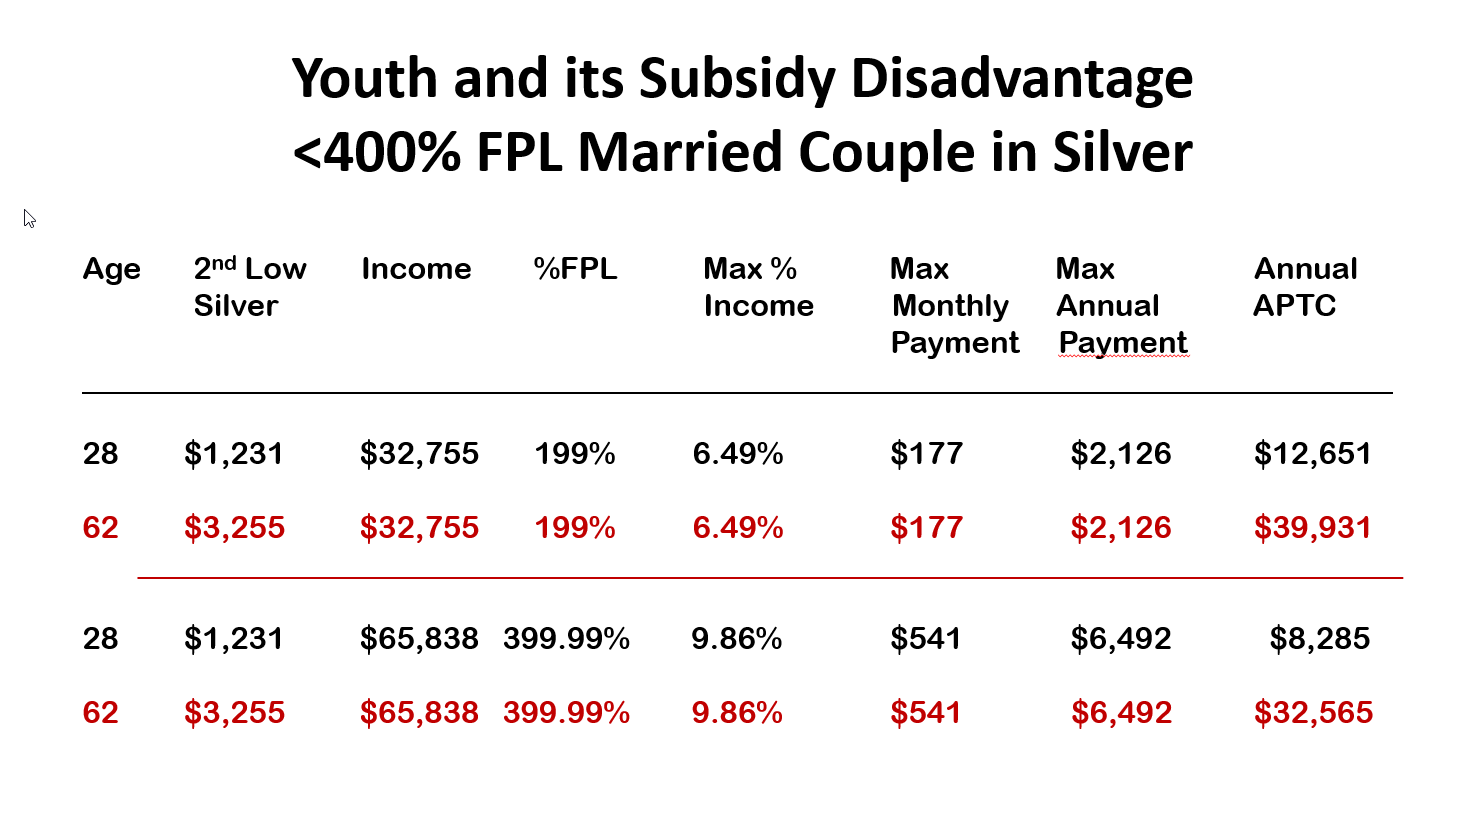 Youth and Subsidy Disadvantage Couple